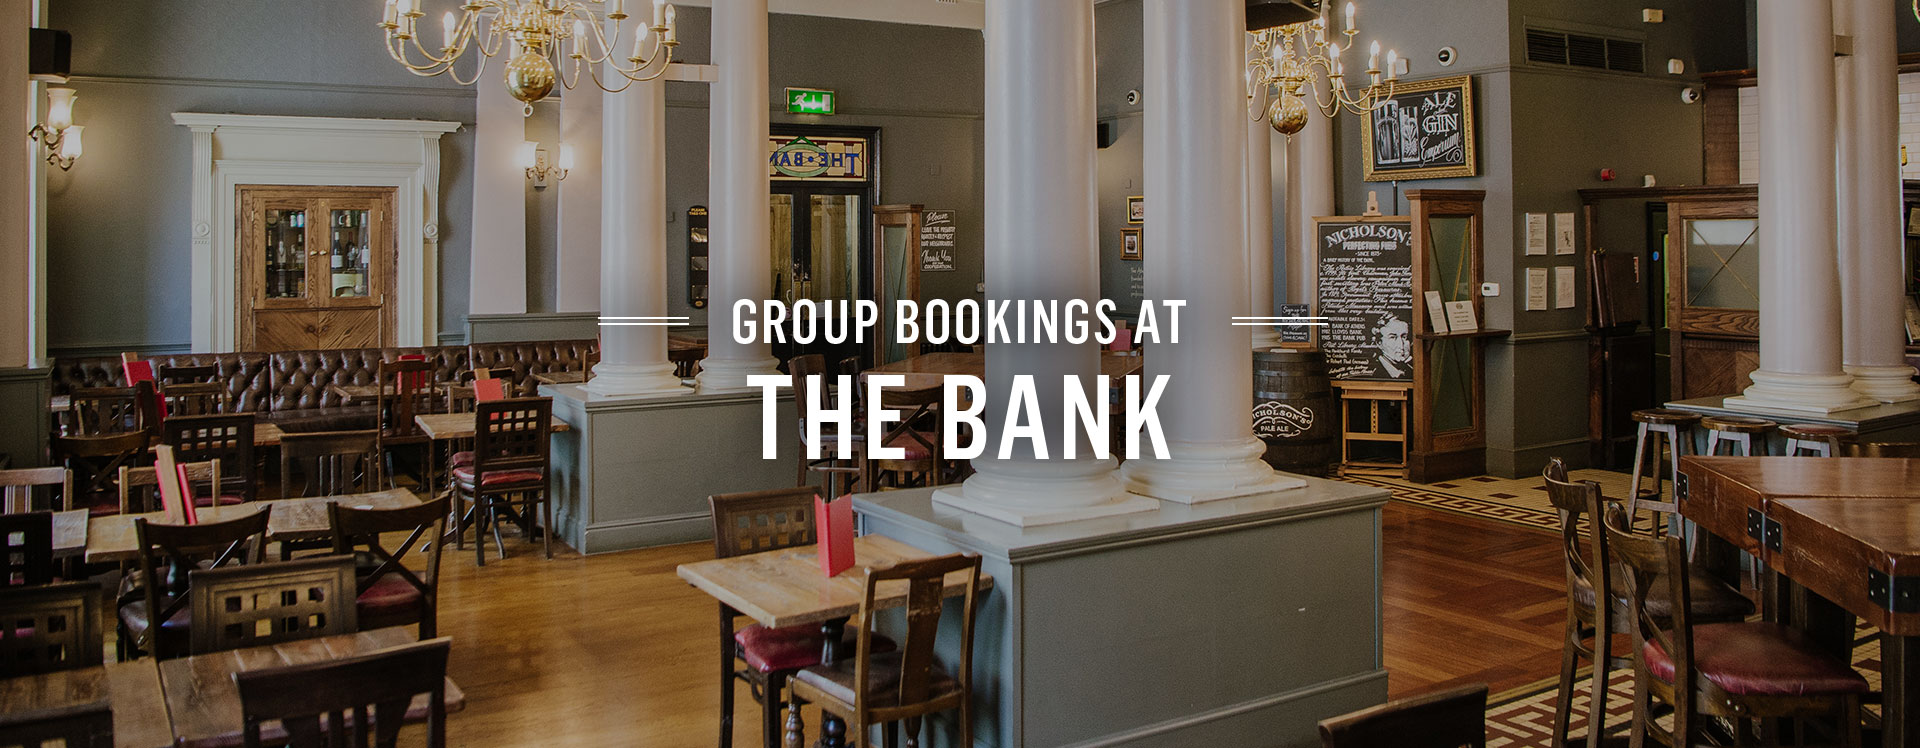 Group Bookings at The Bank